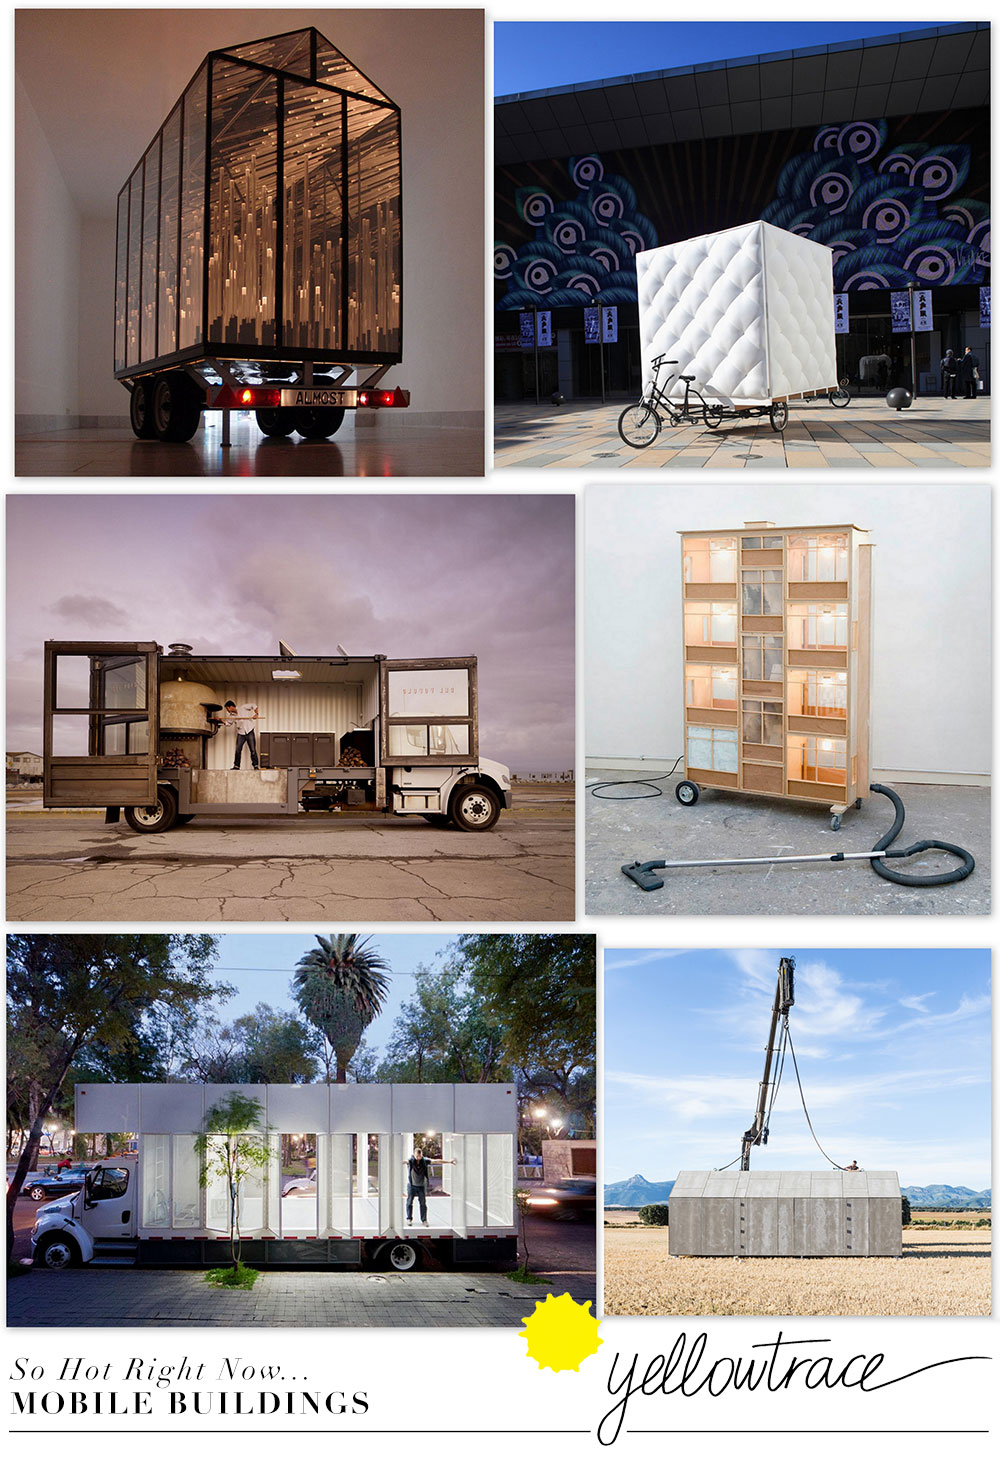 So Hot Right Now // Mobile Buildings.